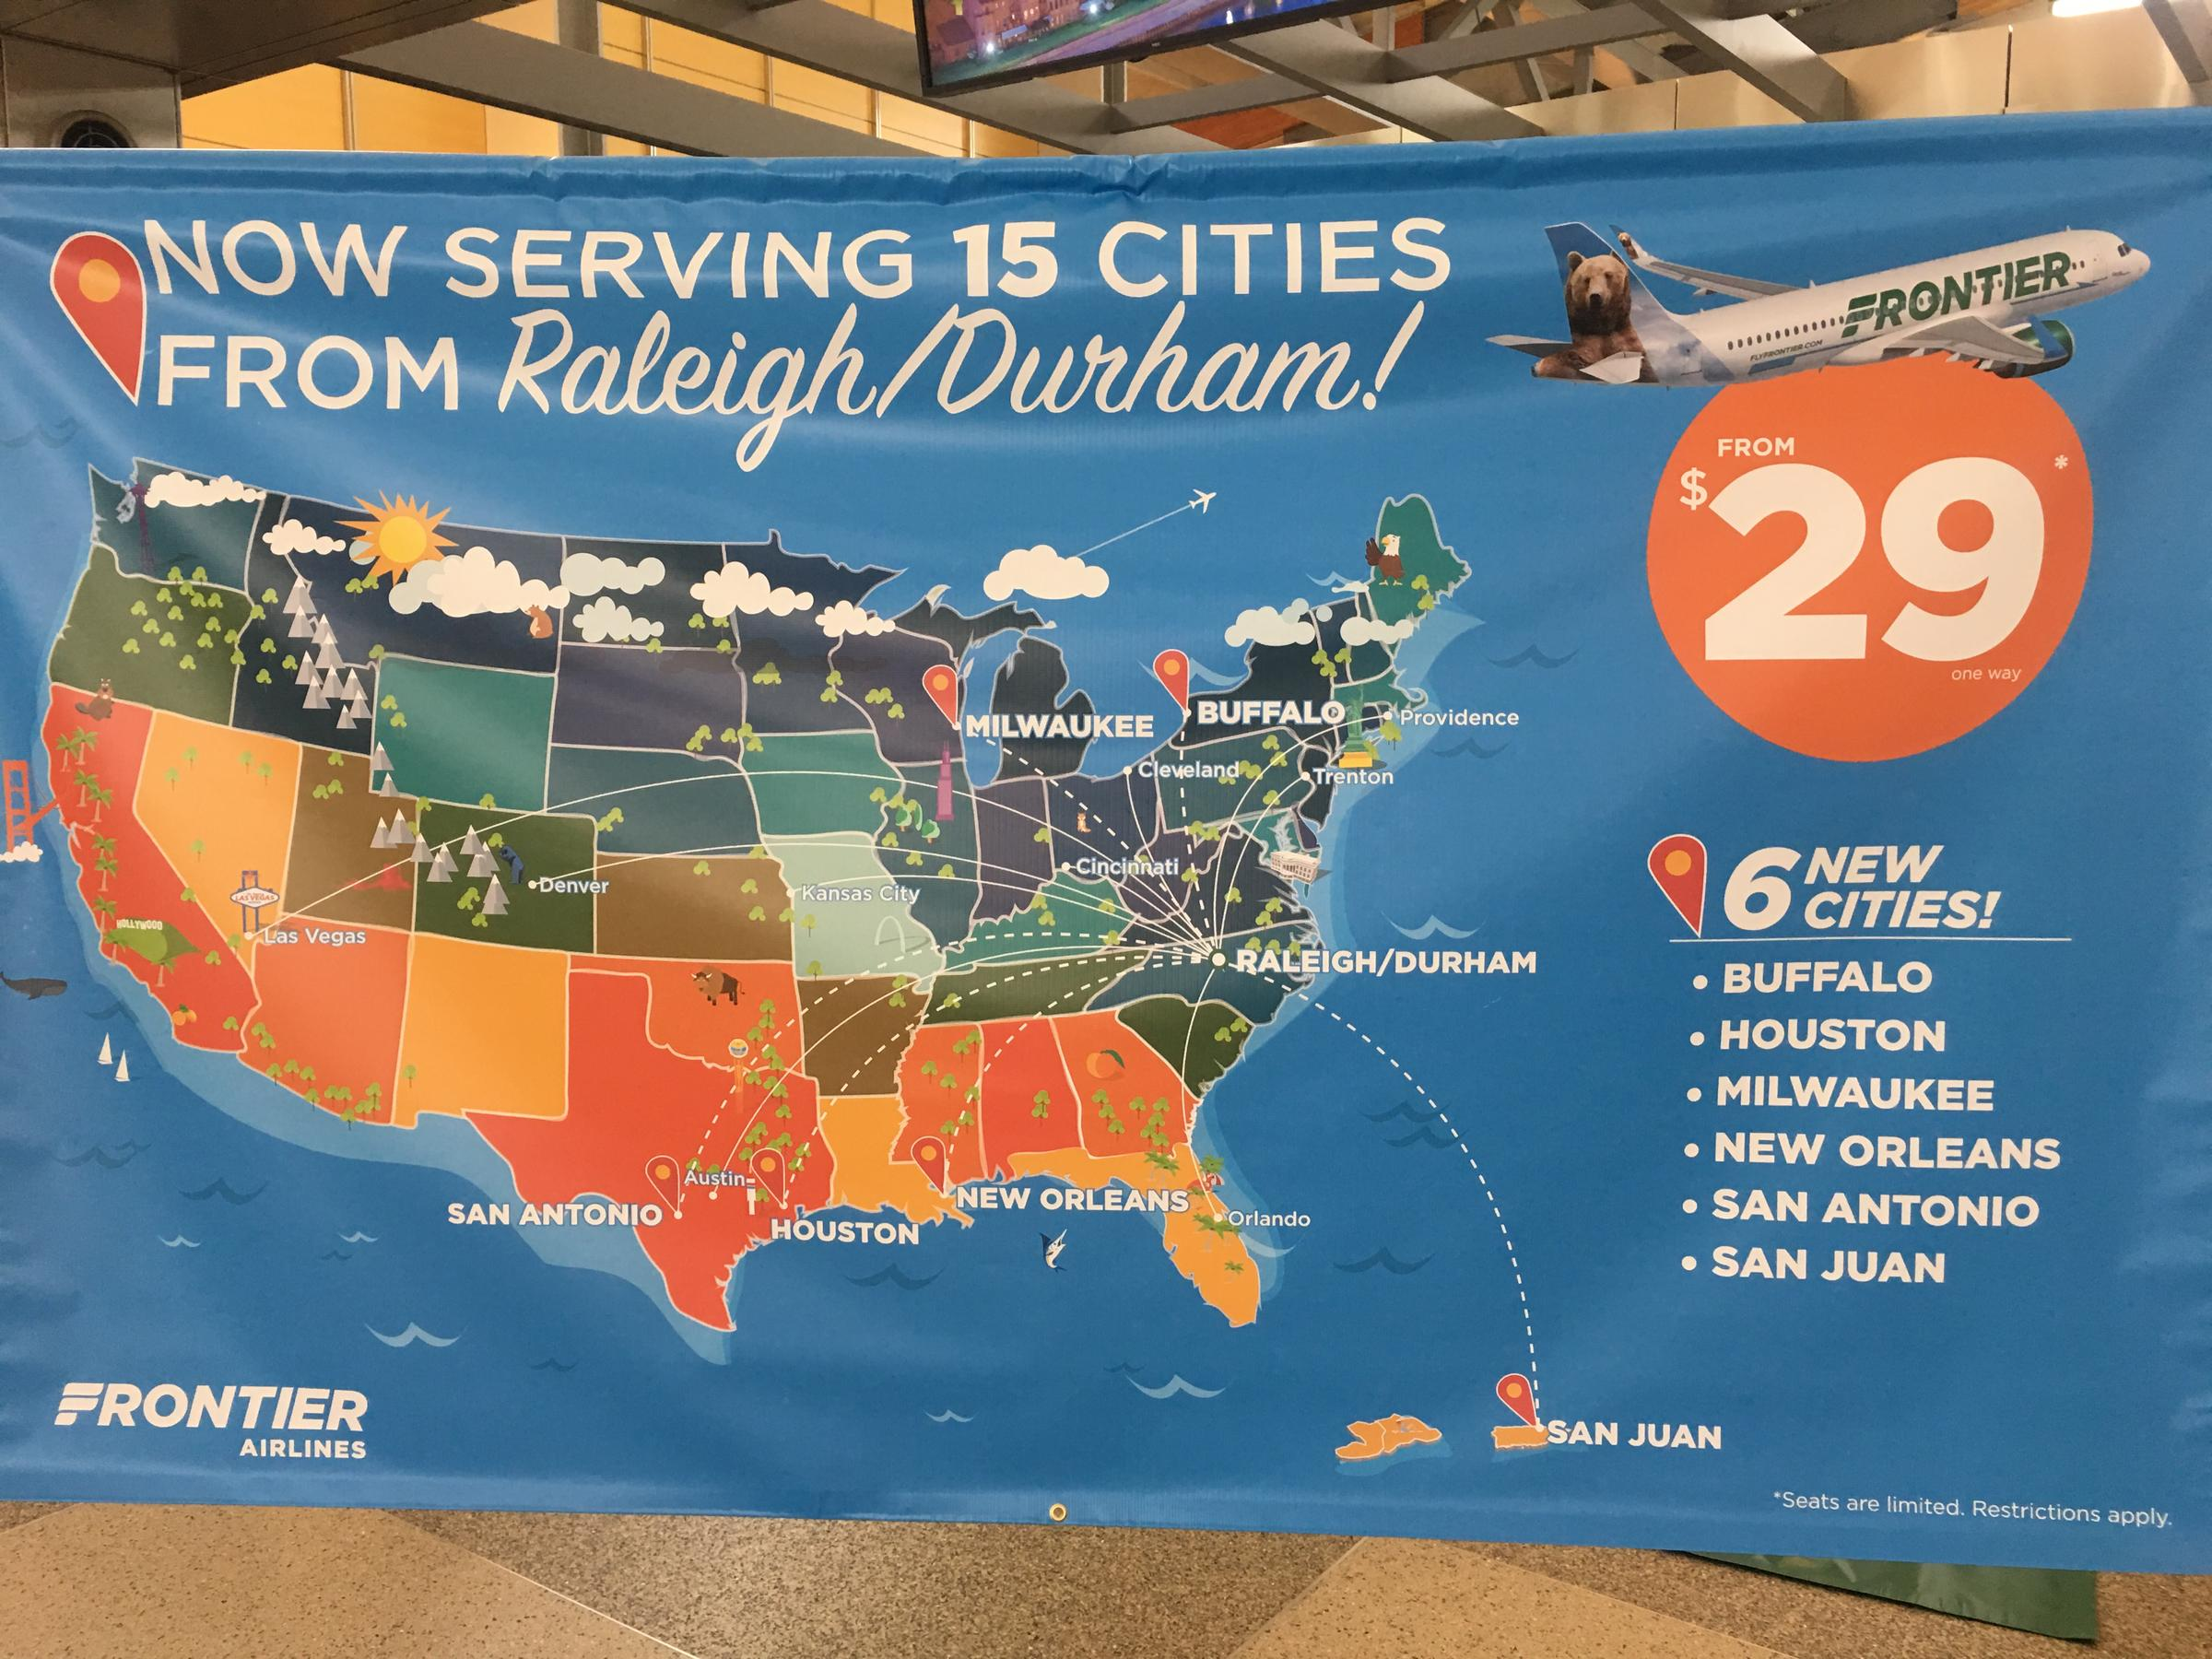 Frontier Adds Six Nonstop Flights From RDU | WUNC on ewn airport map, evv airport map, rno airport map, mfe airport map, lft airport map, fnt airport map, mlu airport map, fai airport map, clt airport map, bgr airport map, durham airport map, eug airport map, portland international airport map, ilm airport map, jac airport map, edi airport map, roc airport map, sbp airport map, airlines washington dulles airport map, fay airport map,